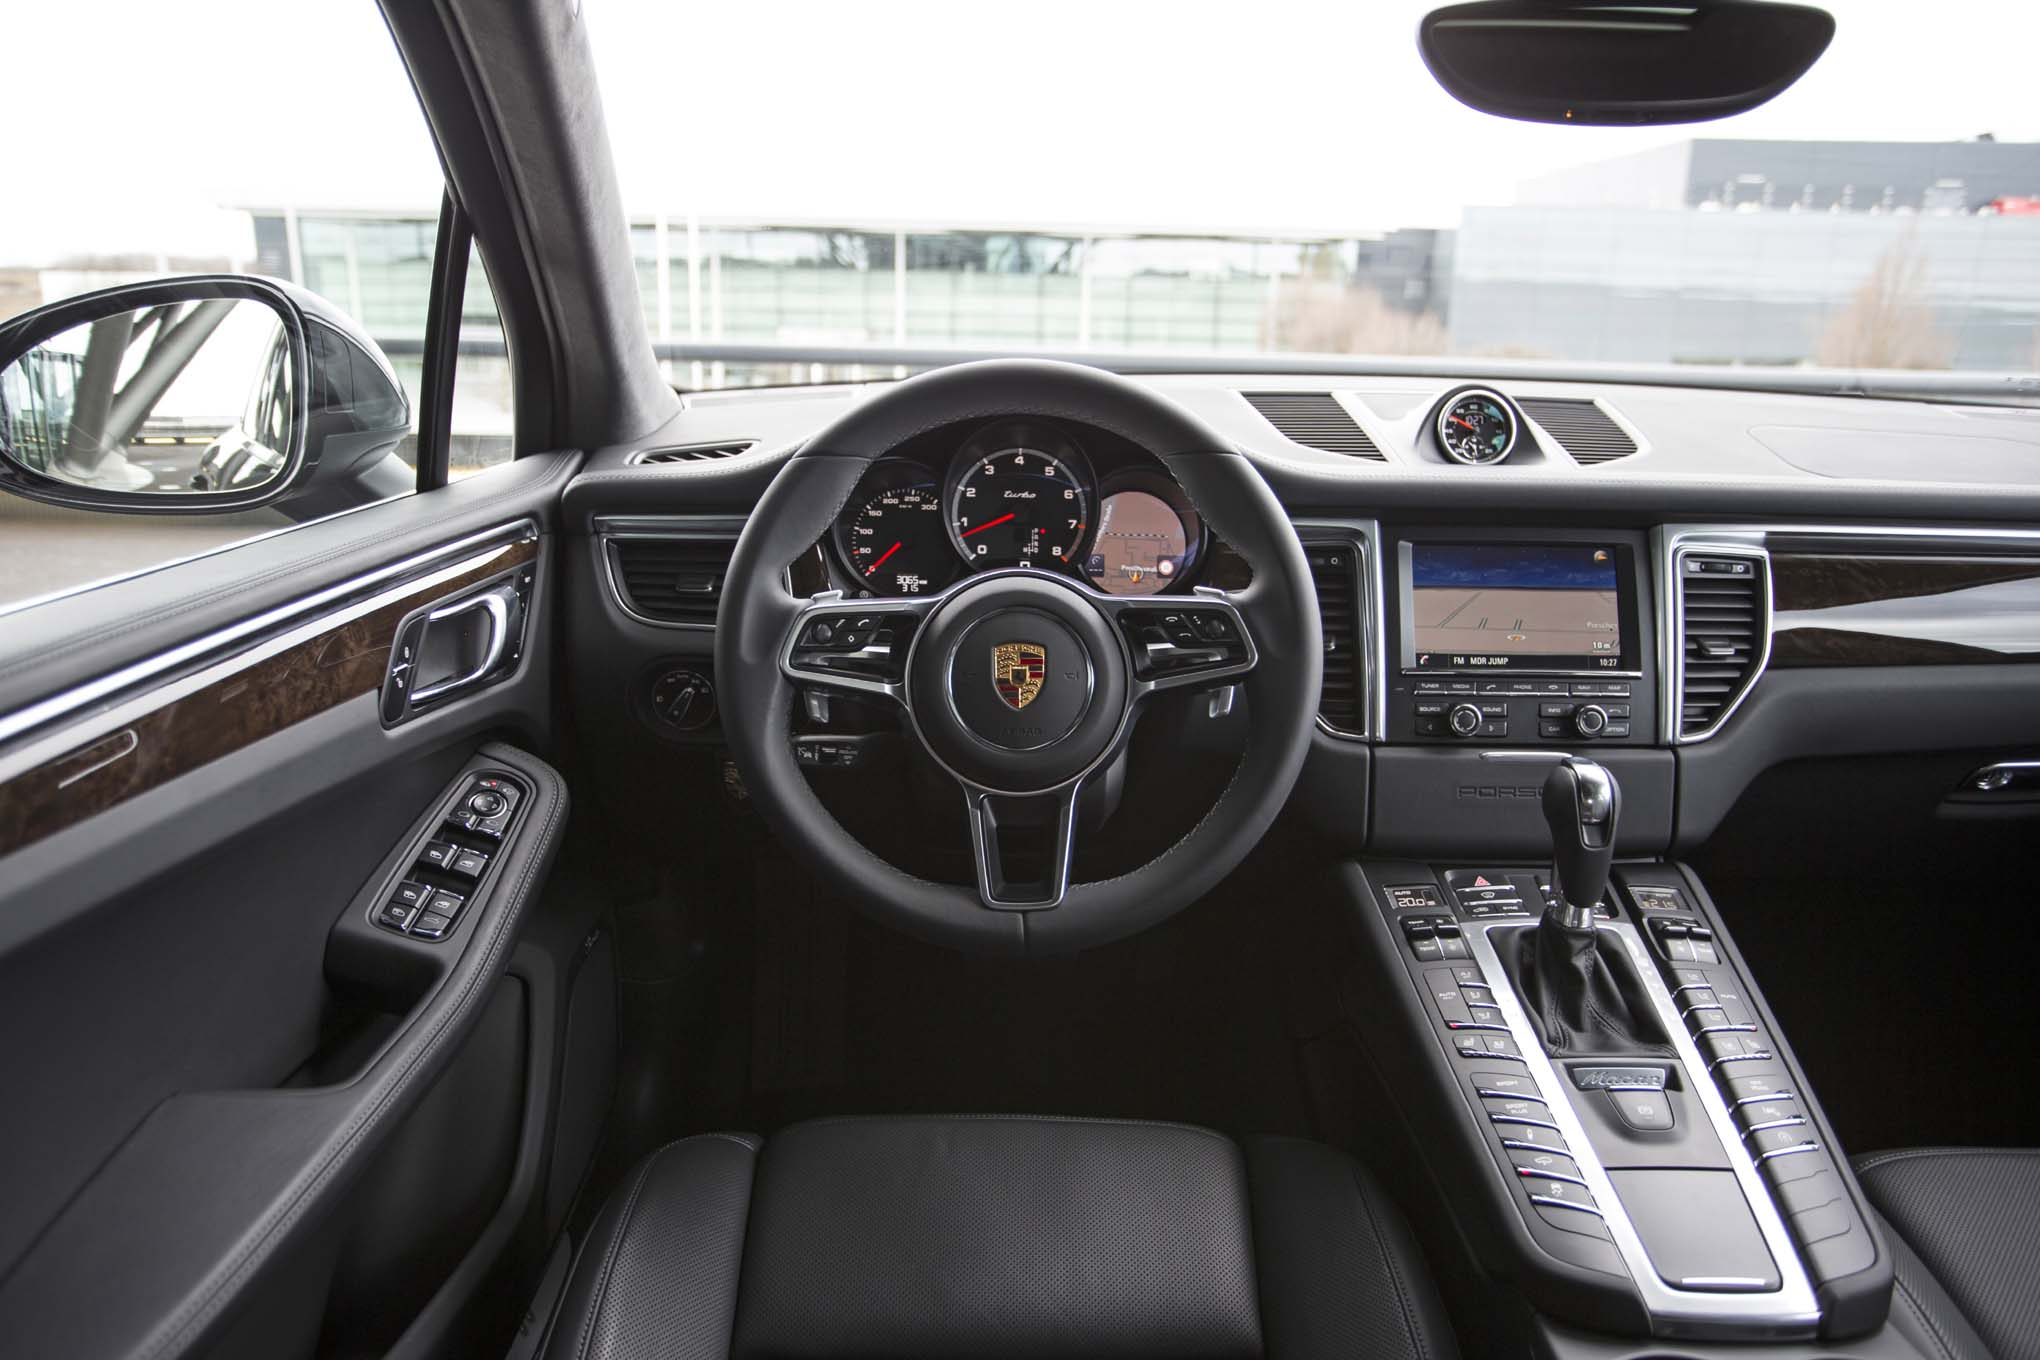 2015-porsche-macan-turbo-interior.jpg